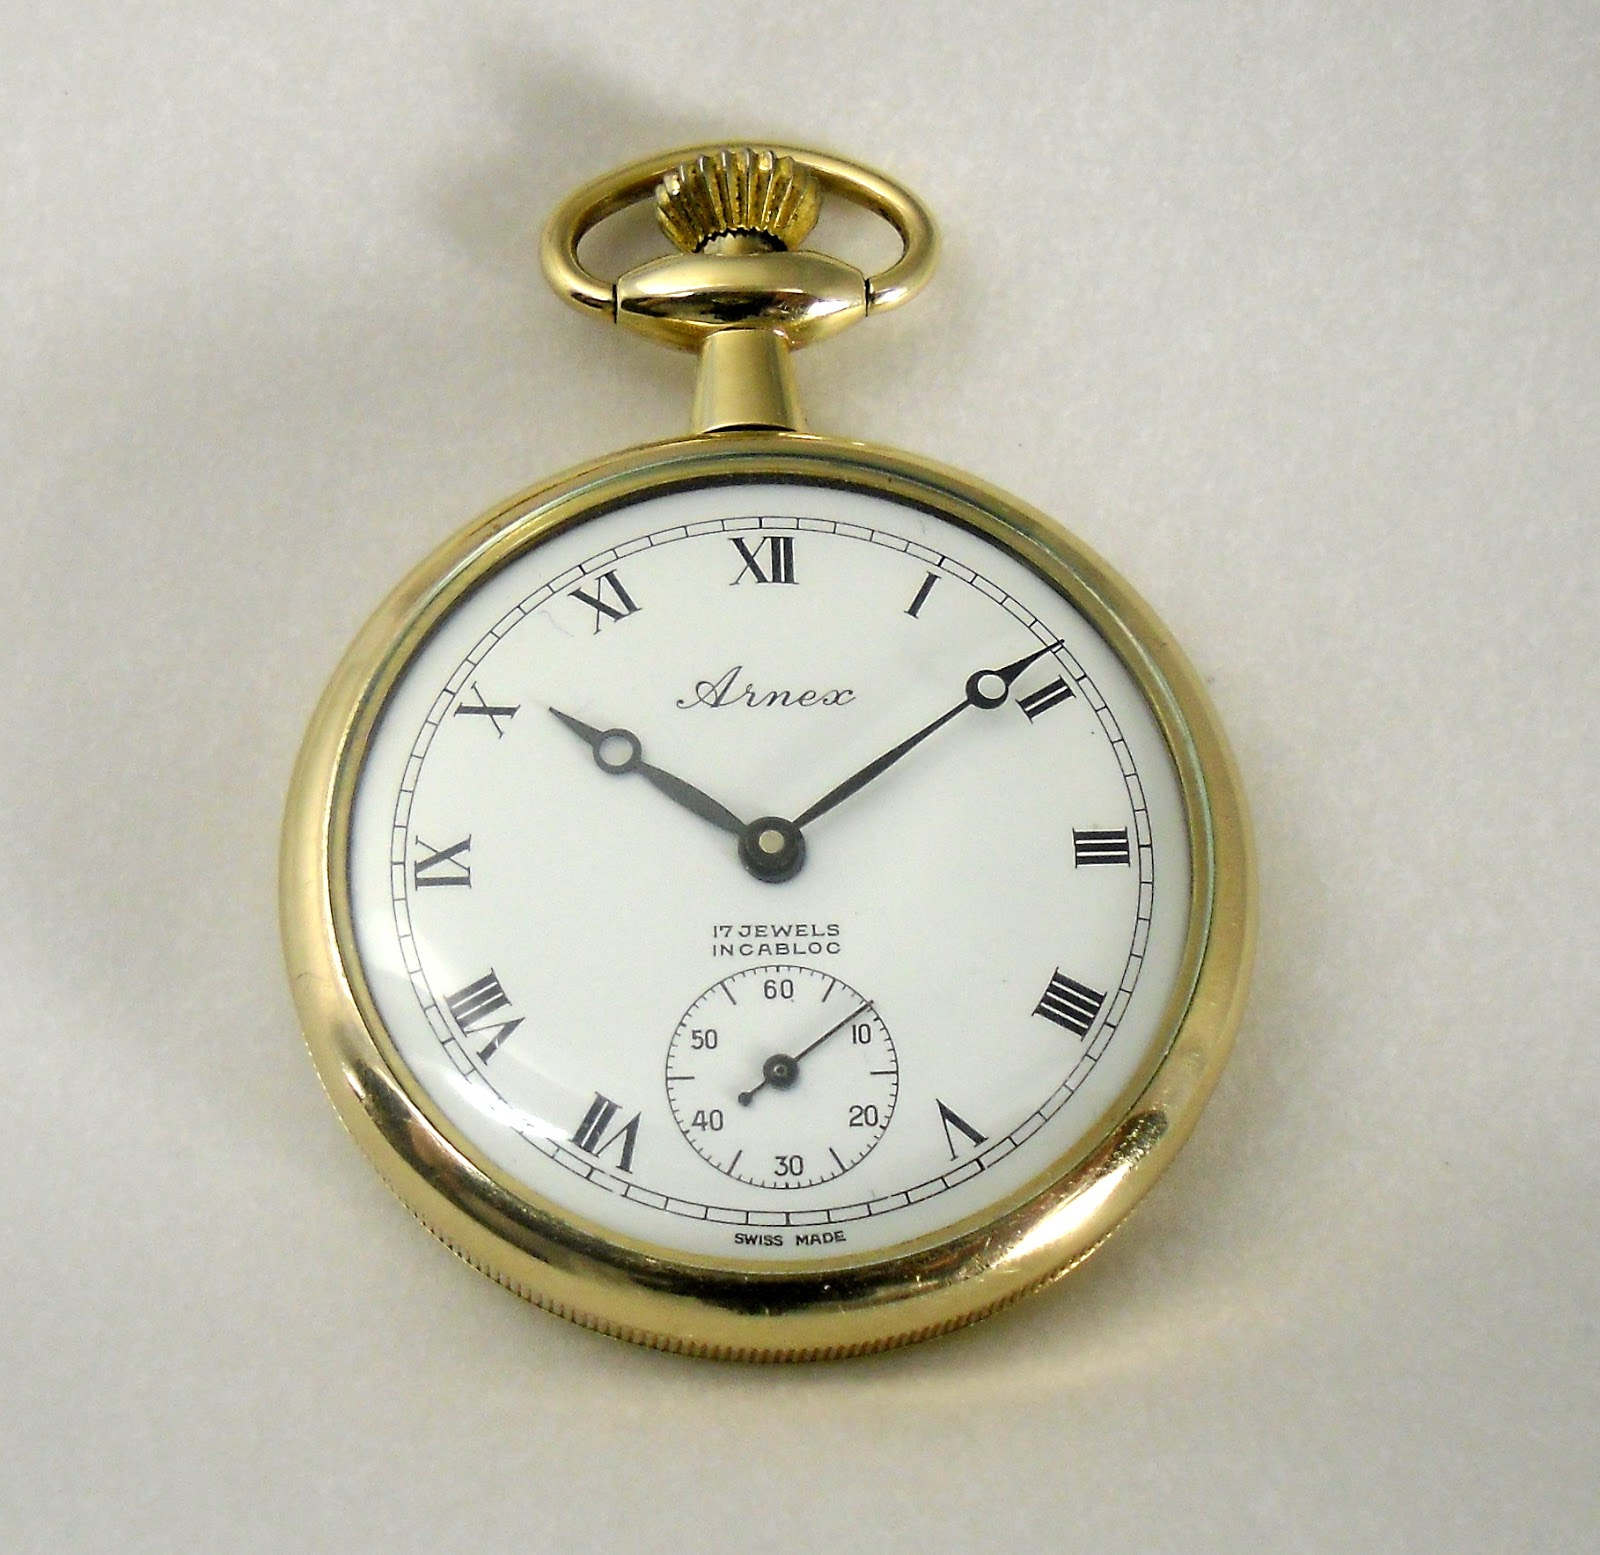 dating a hamilton pocket watch Discover a large selection of hamilton railroad watches on chrono24 - the worldwide marketplace for luxury watches compare all hamilton railroad watches buy safely & securely.